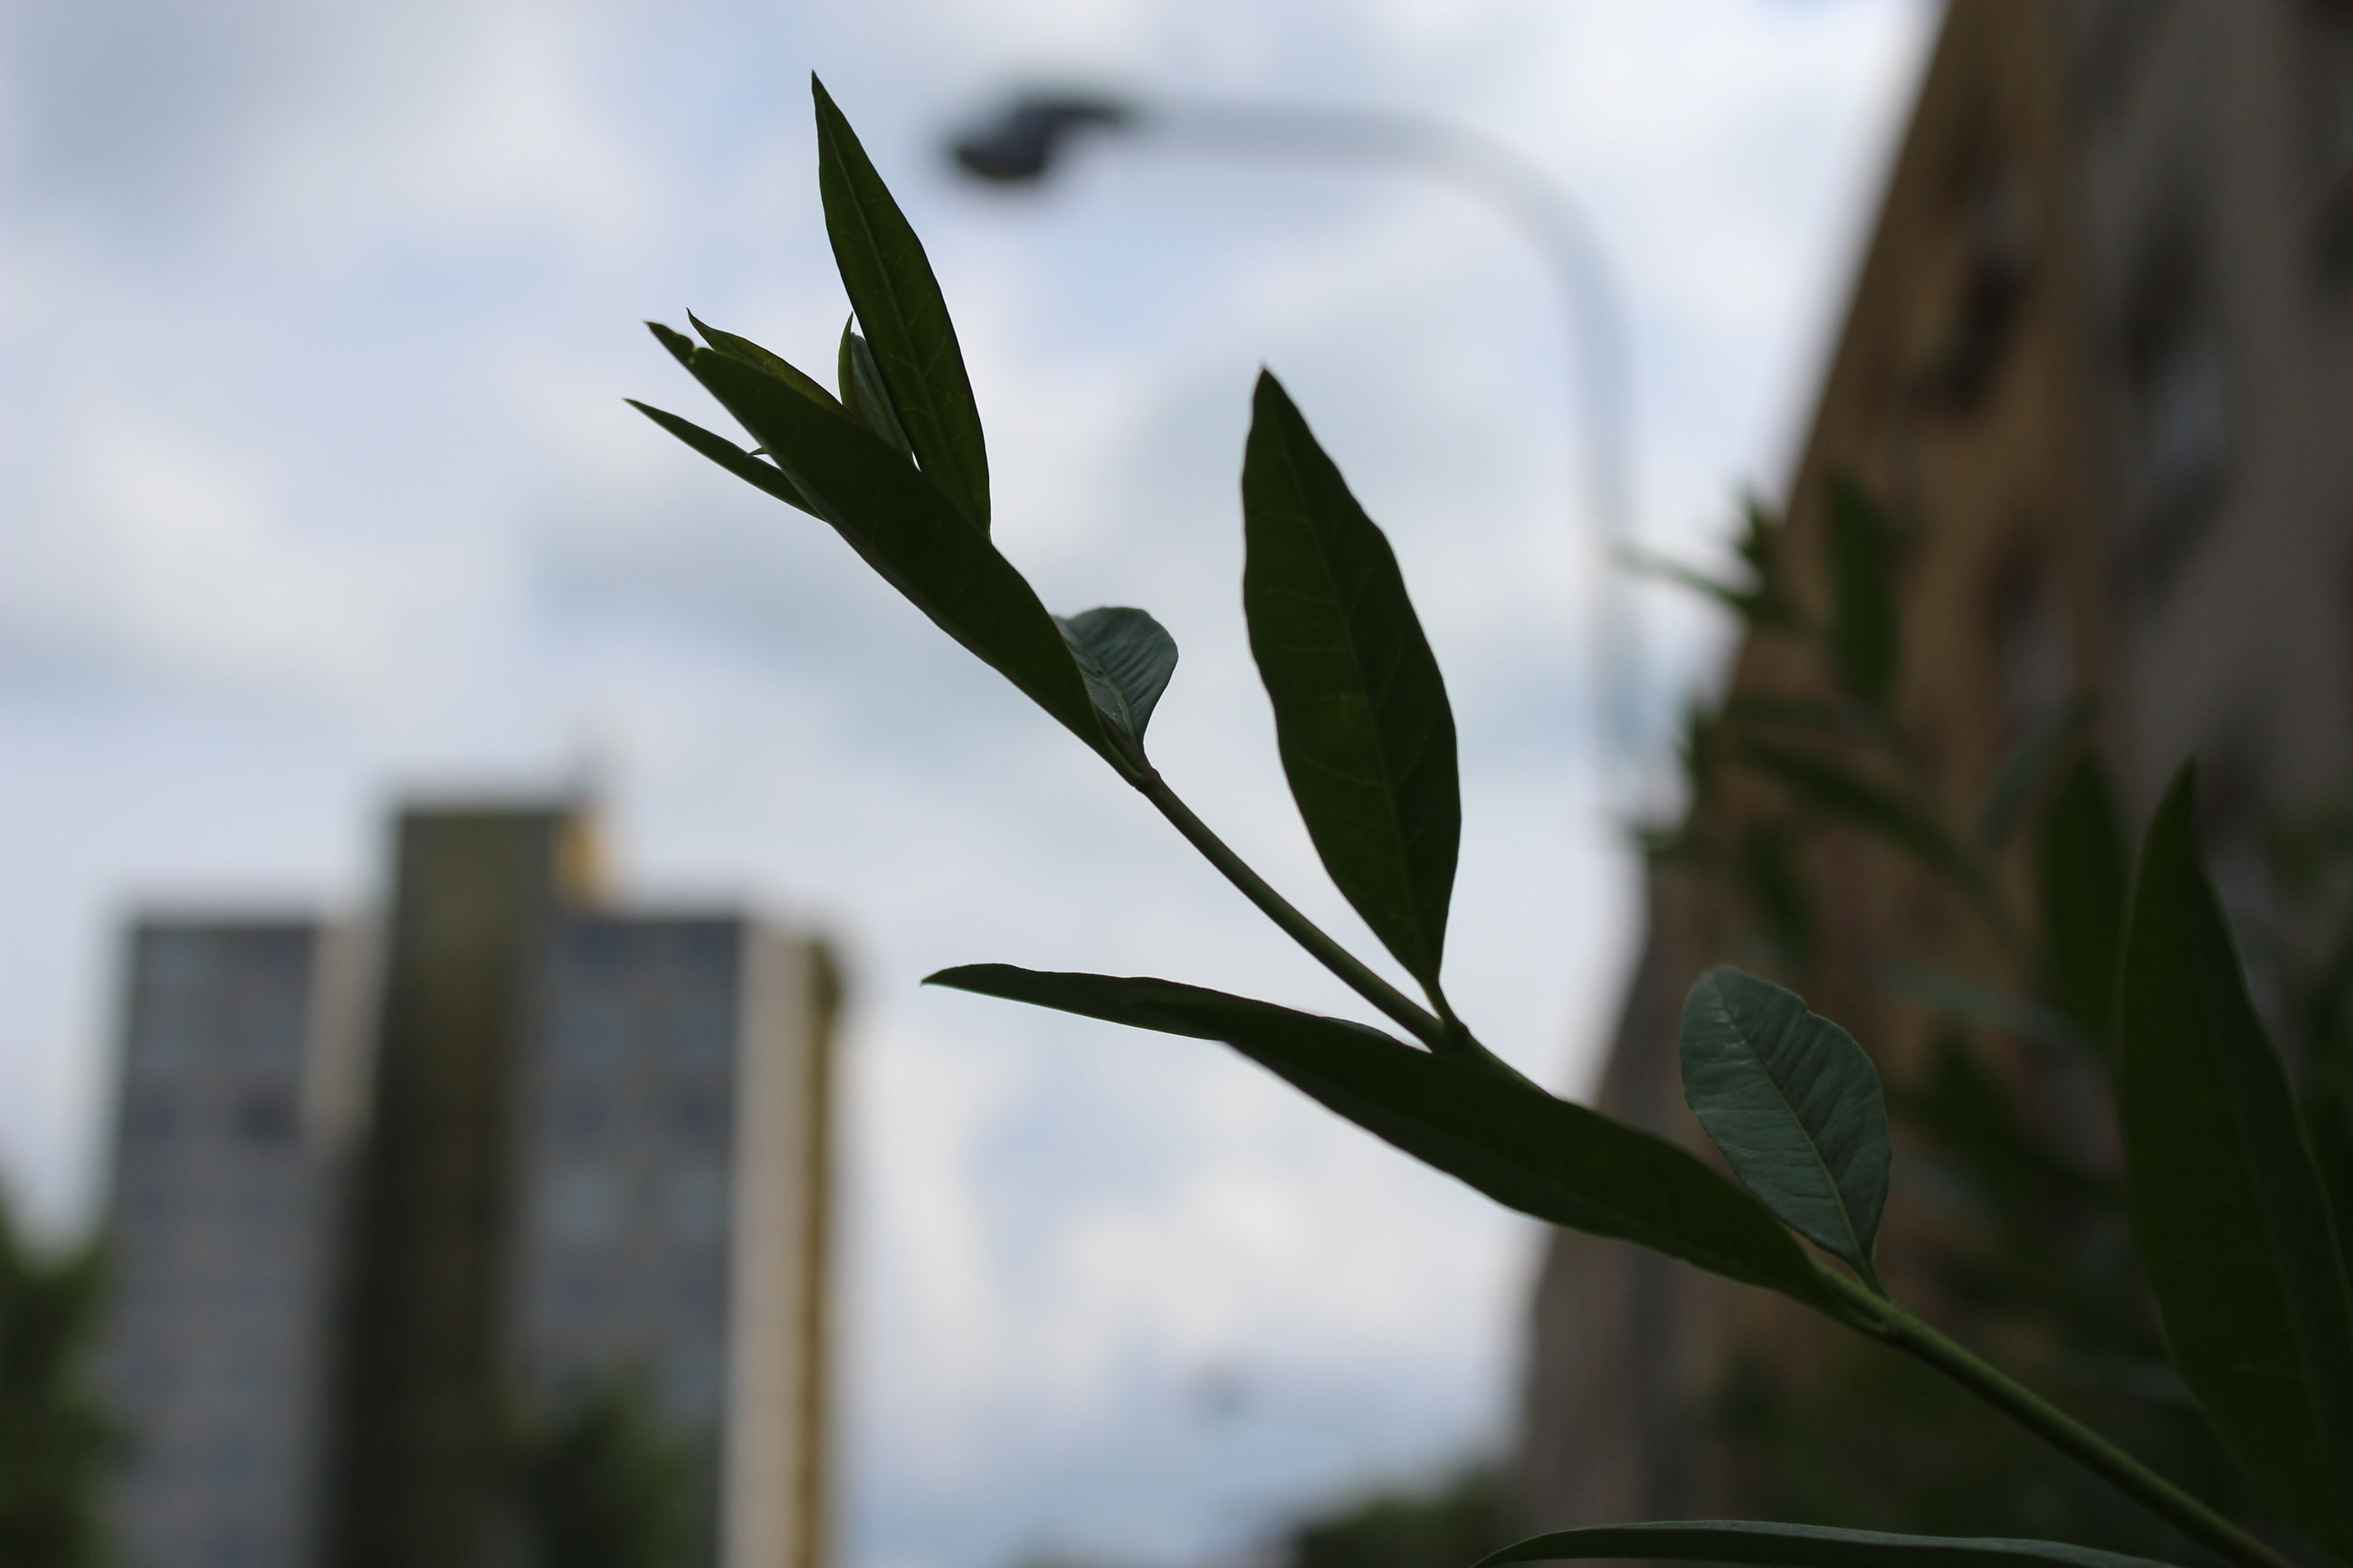 focus on foreground, leaf, growth, close-up, plant, building exterior, sky, built structure, architecture, nature, stem, day, fragility, branch, selective focus, outdoors, no people, twig, freshness, growing